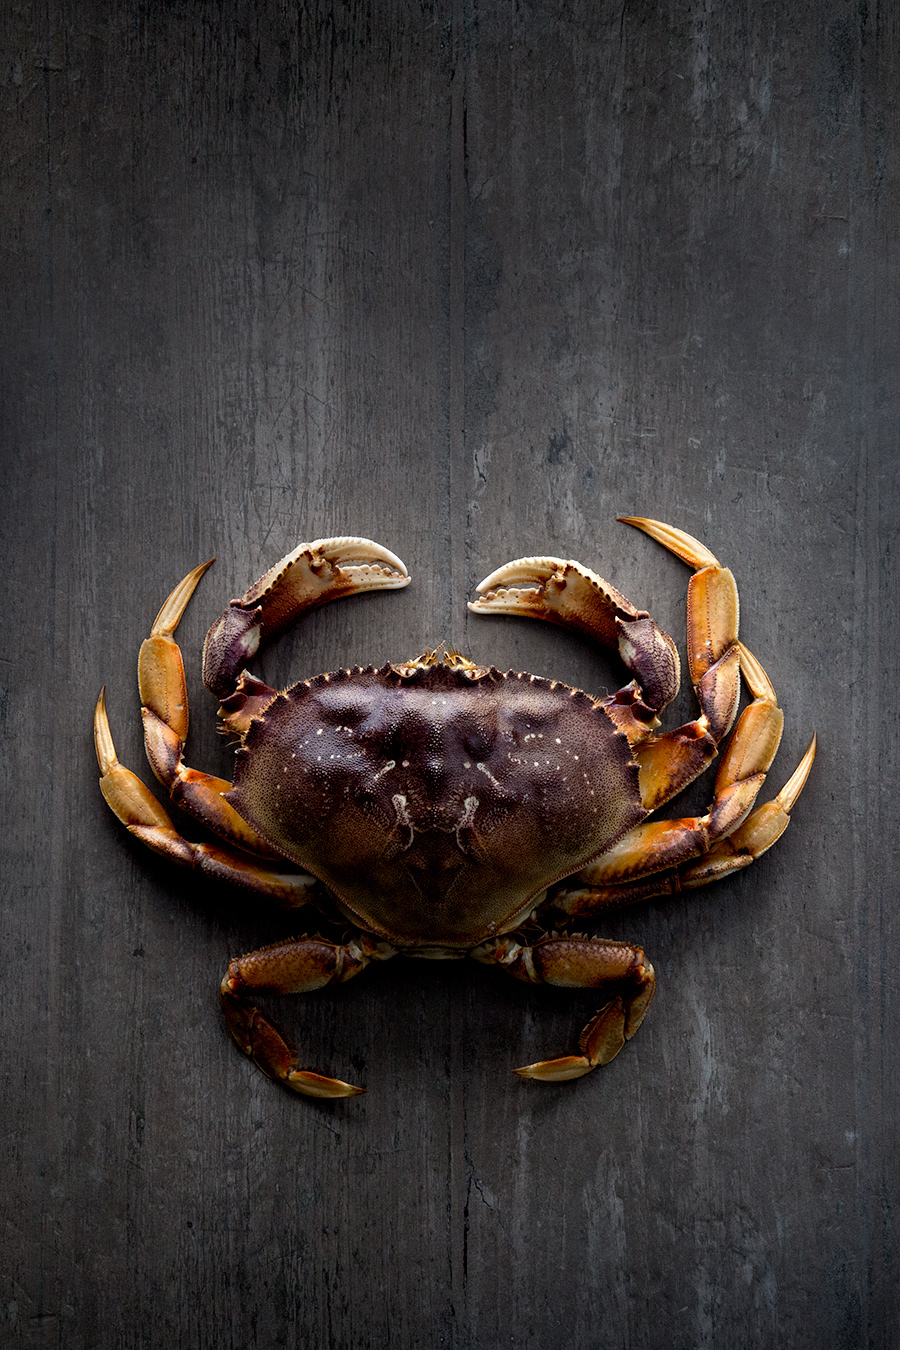 Crab still life from mortar-and-pestle.ca